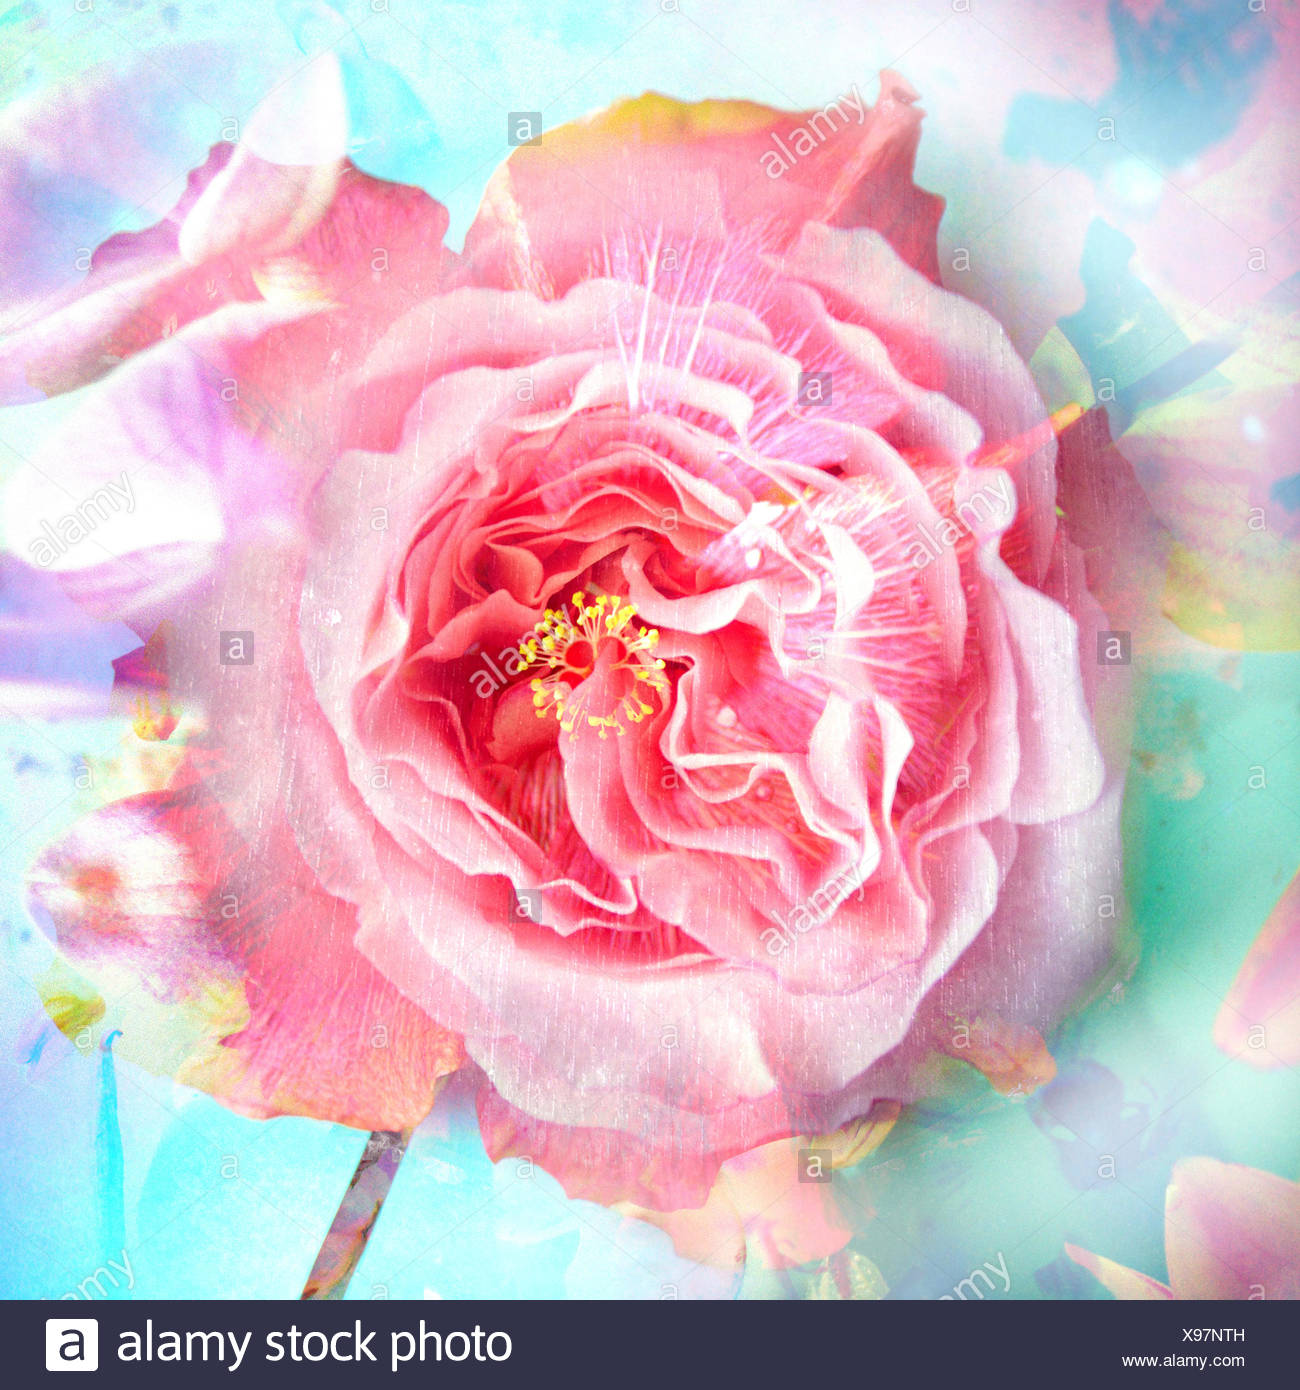 A Floral Montage of a mallow and a rose in powerful pastels, photograph, layer work, Stock Photo